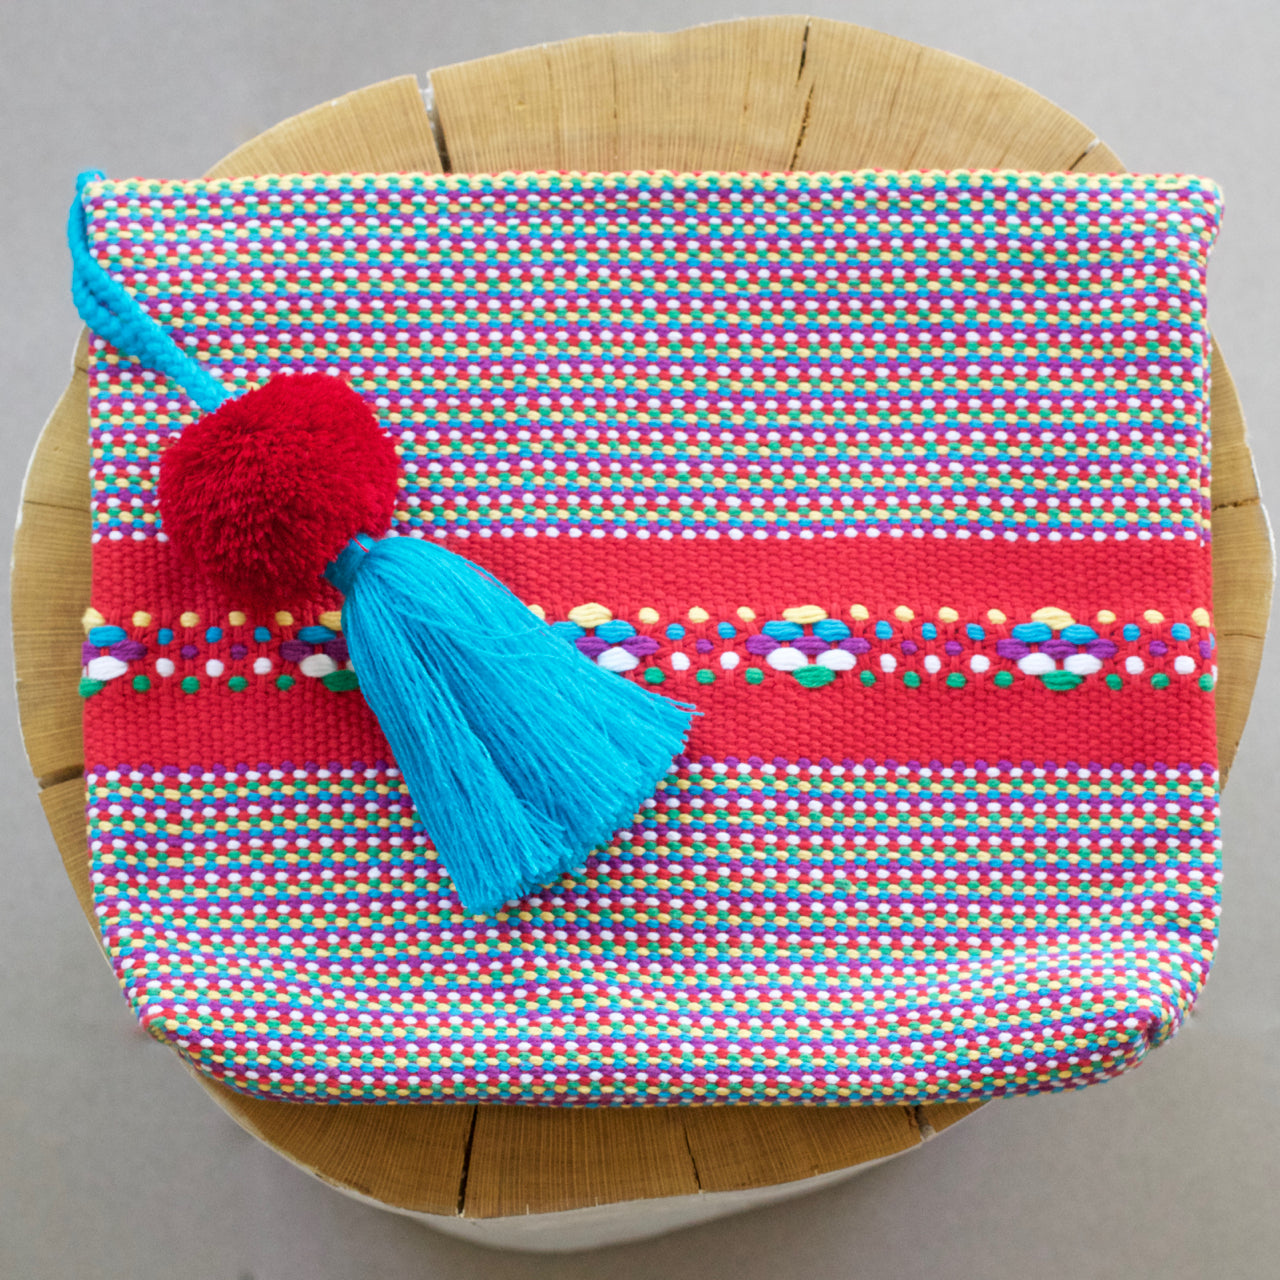 Jalieza Striped Clutch 11  Clutch Rainbow - Cielo Collective handmade Mexico Guatemala